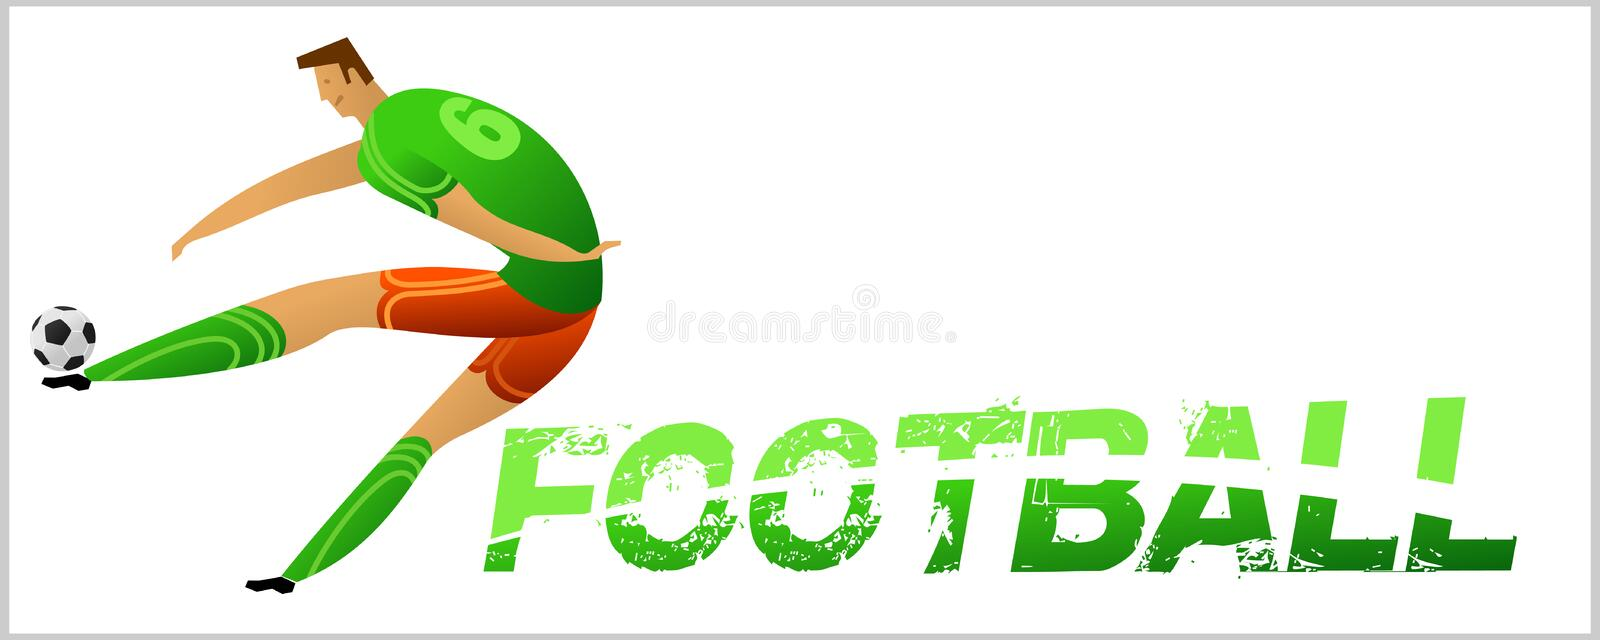 Banner with soccer player. Lettering Football with two ball. Football player in campionship. Fool color vector illustration in flat style isolated on white stock illustration